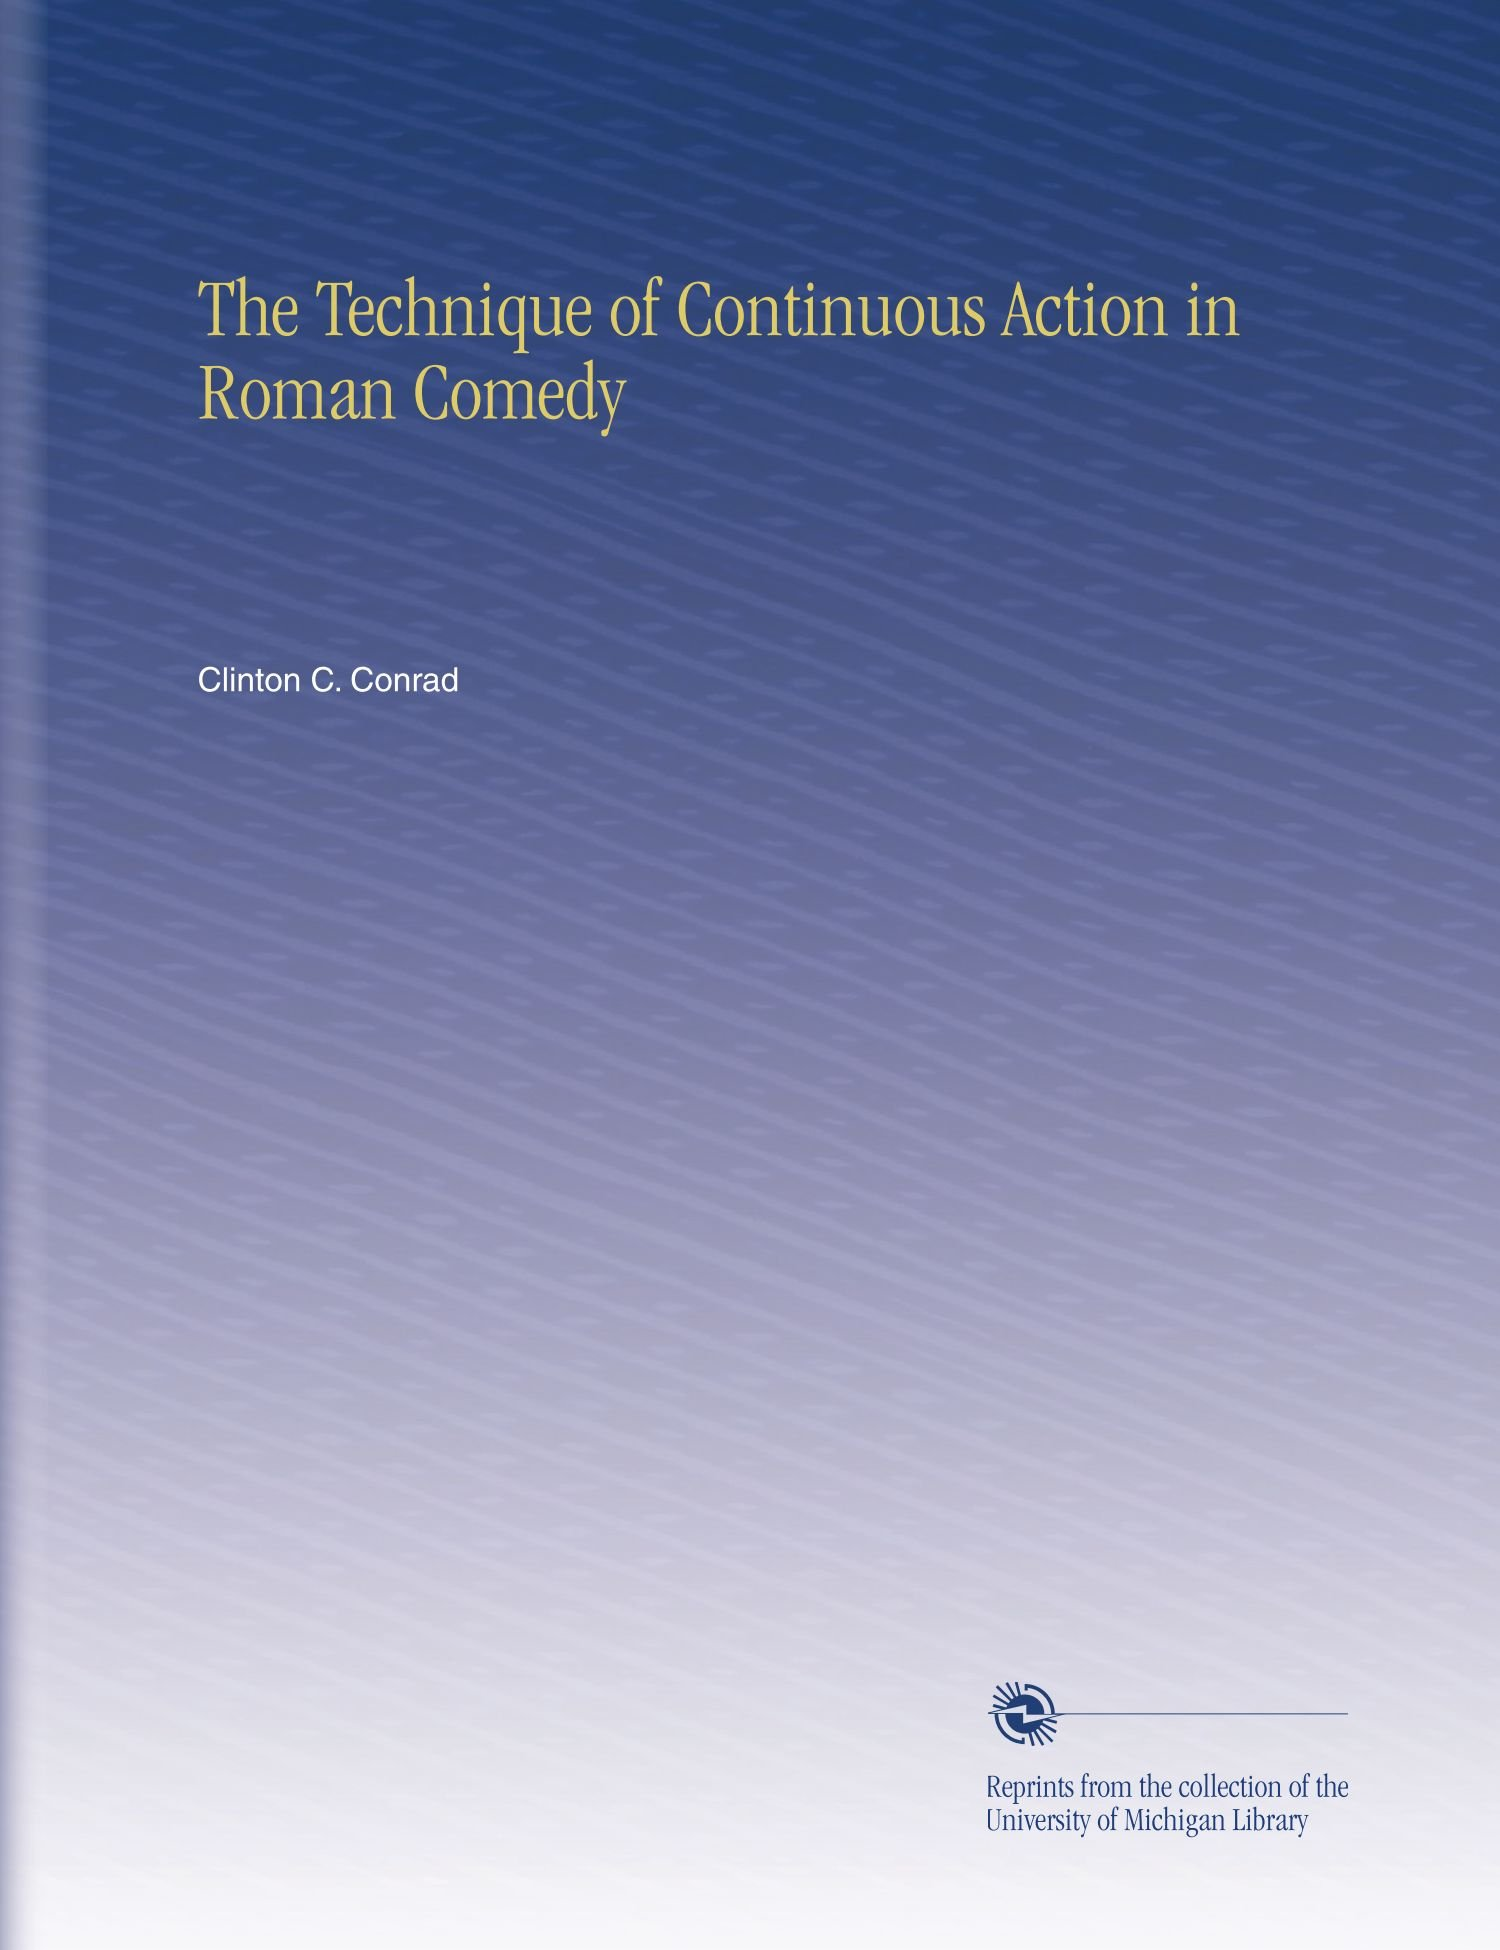 The Technique of Continuous Action in Roman Comedy pdf